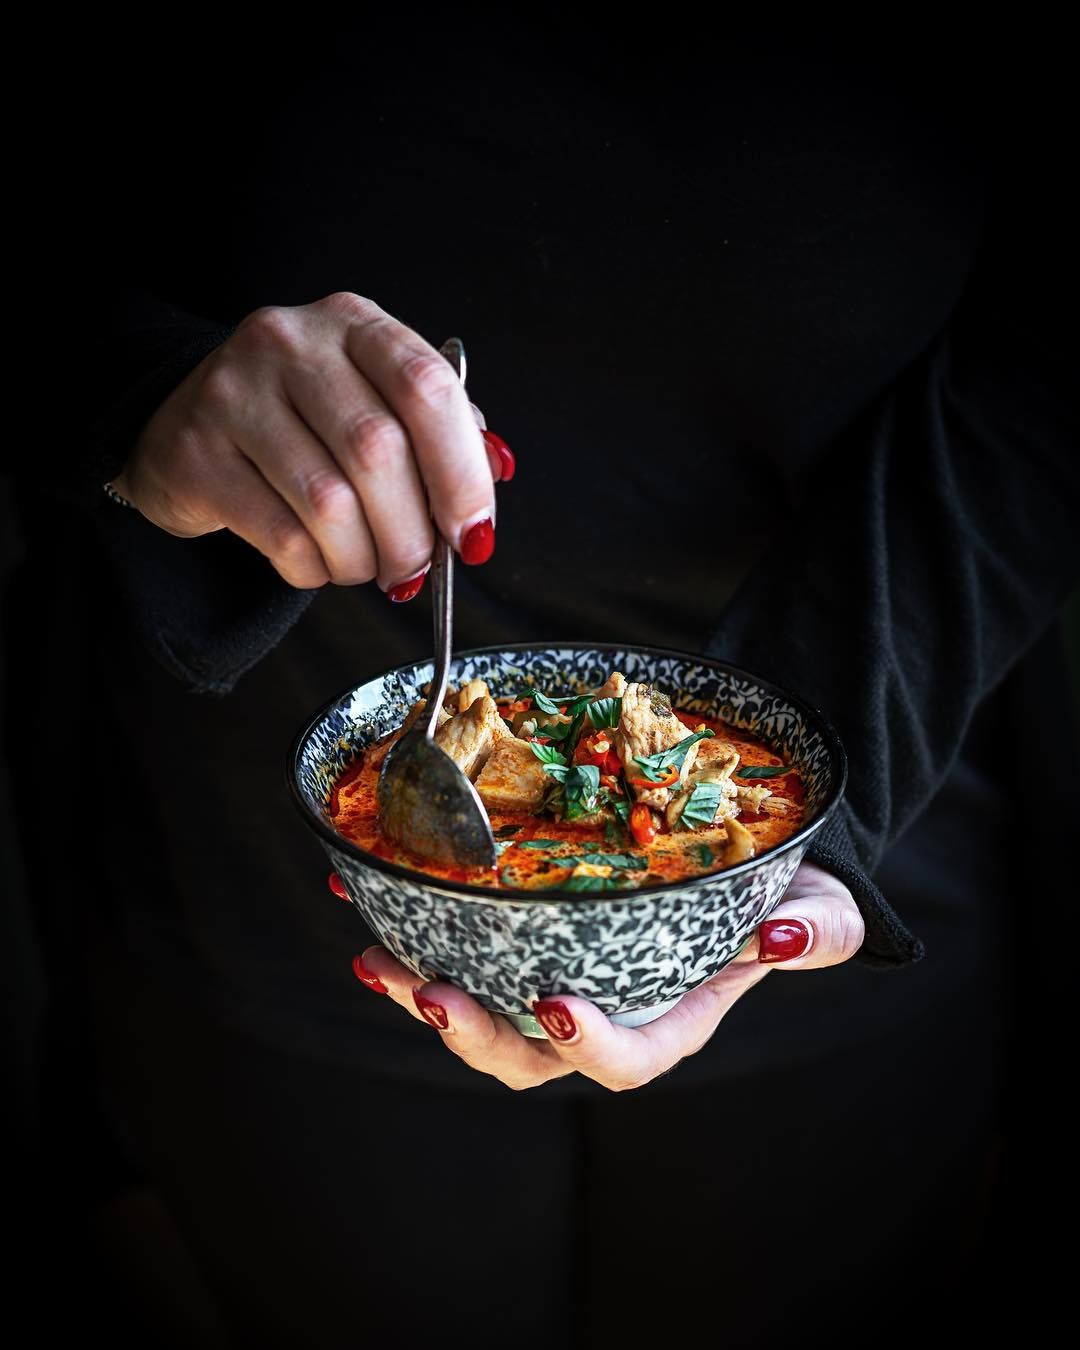 Thai Curry Dark And Moody Food Photography Moody Food